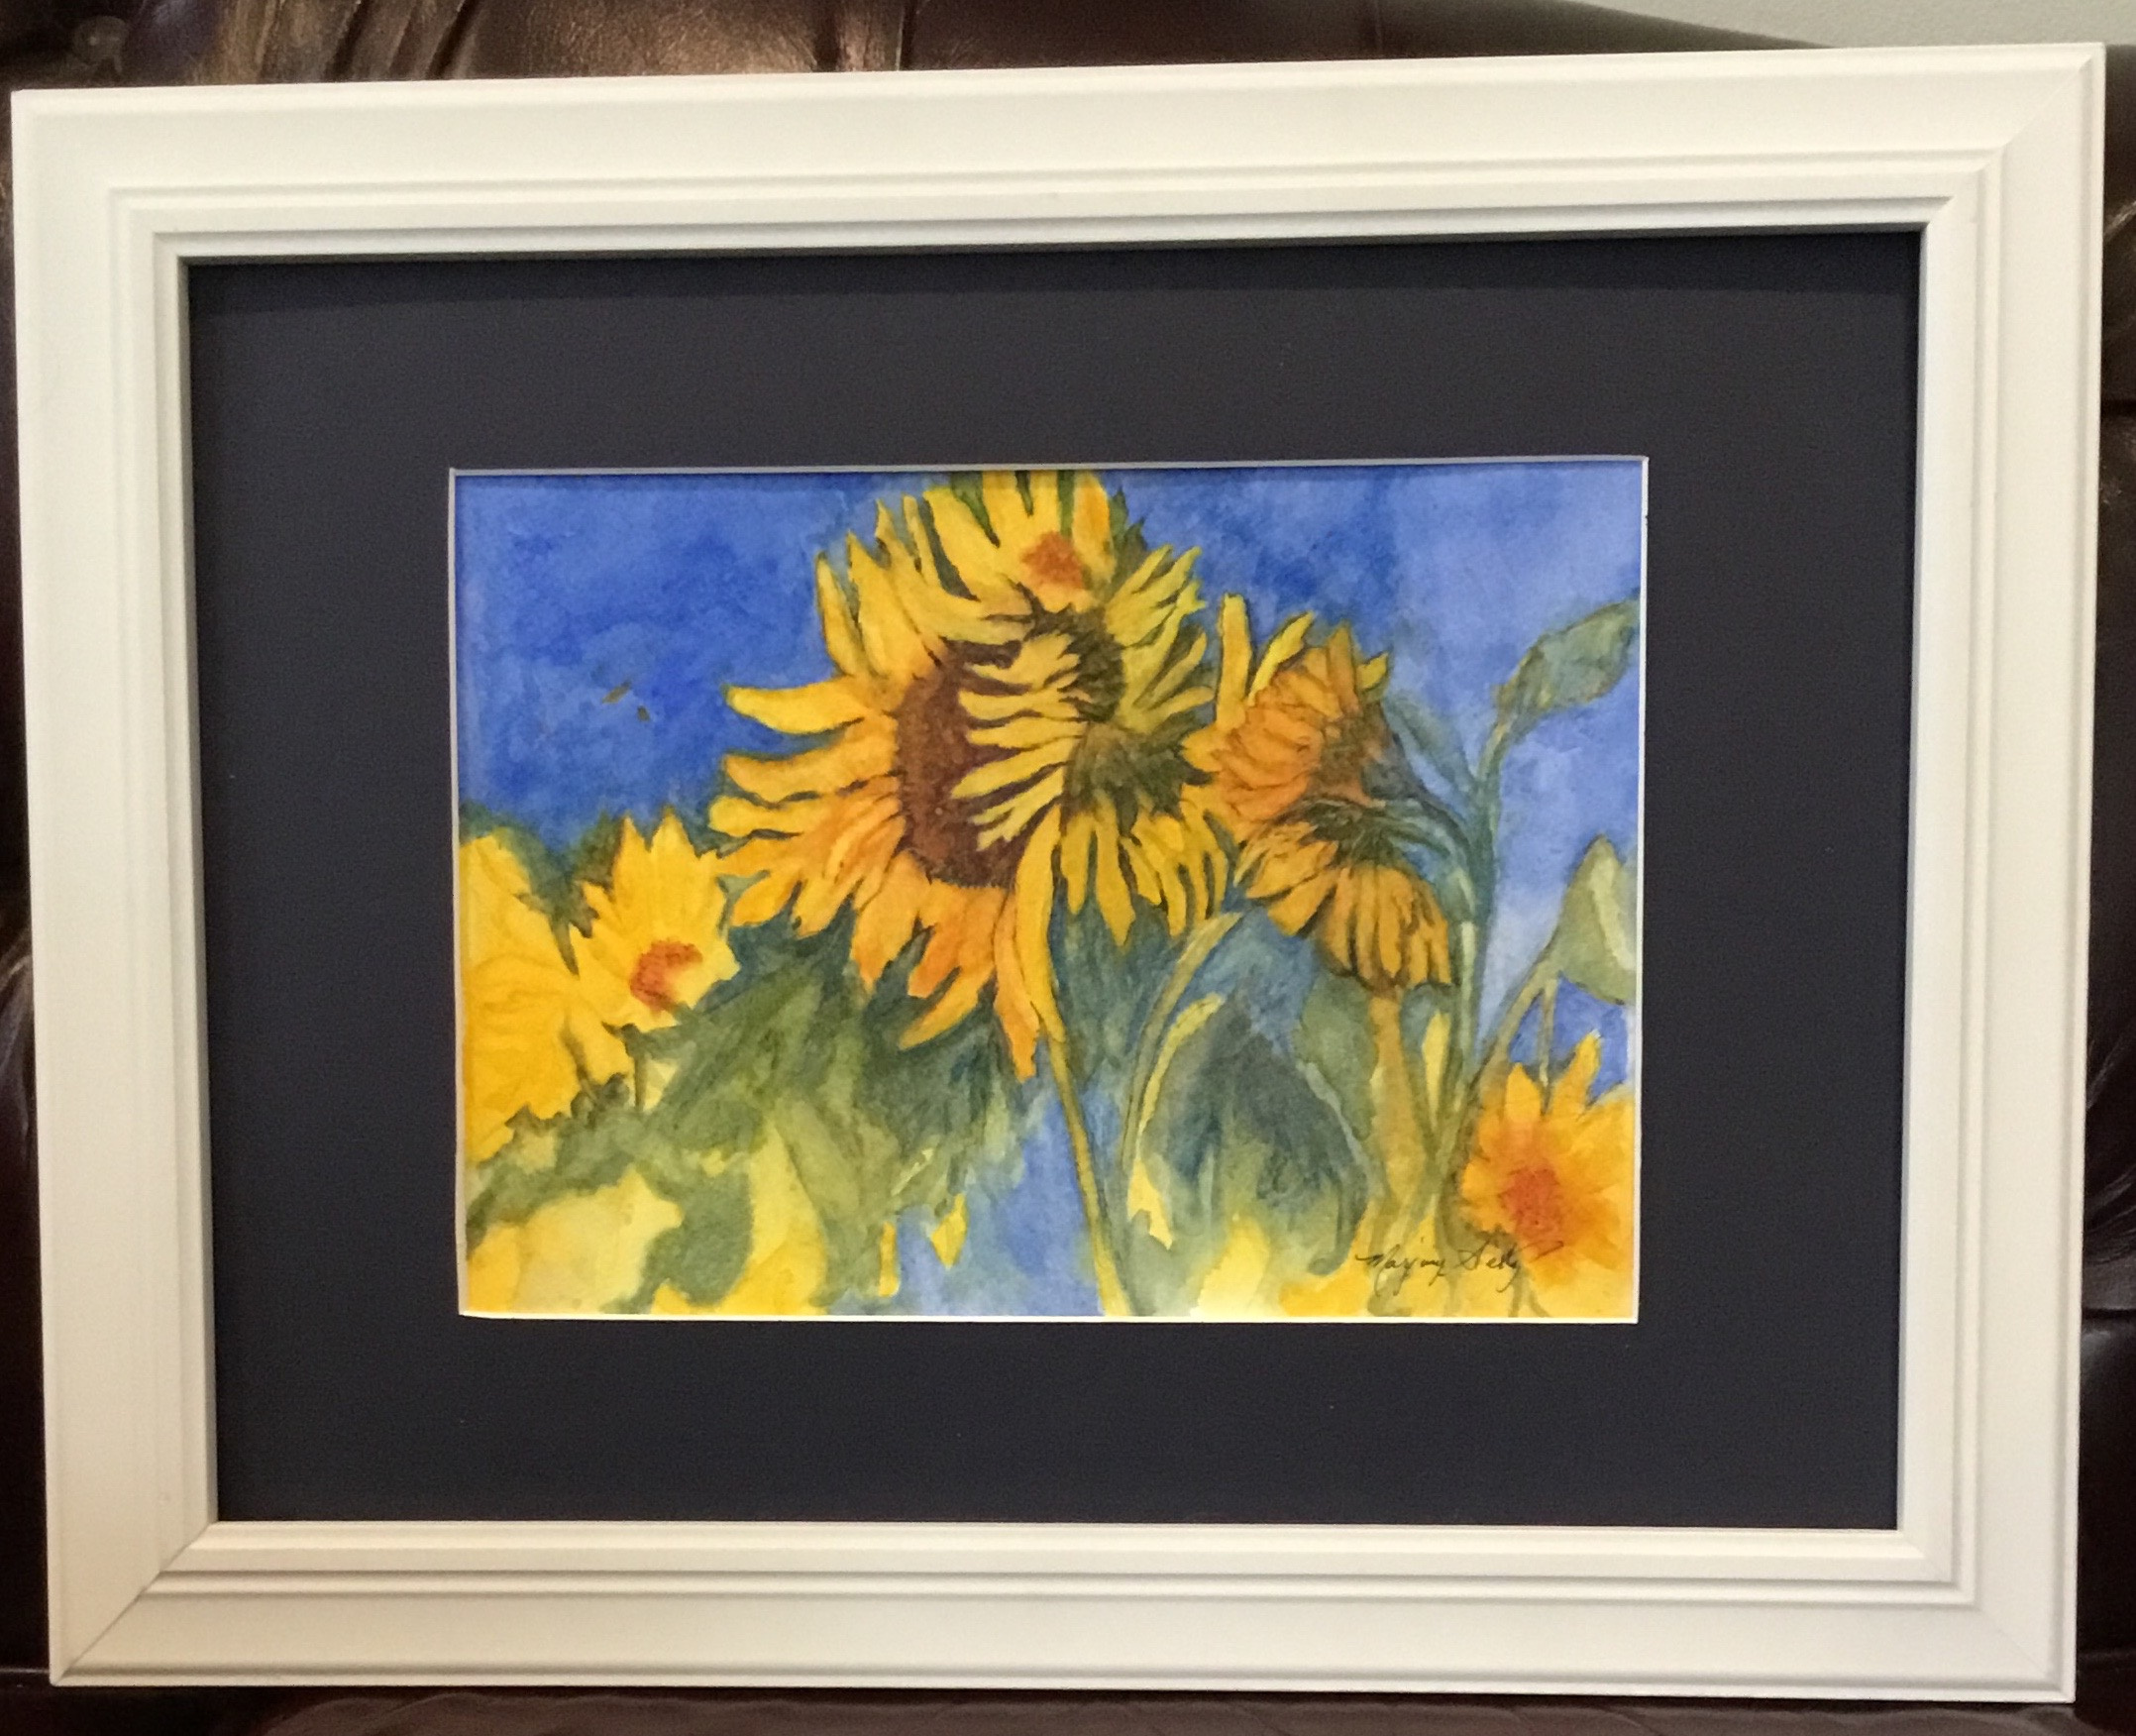 Sunflower Crazy Watercolor on paper 14.5 X 11.5 $175.